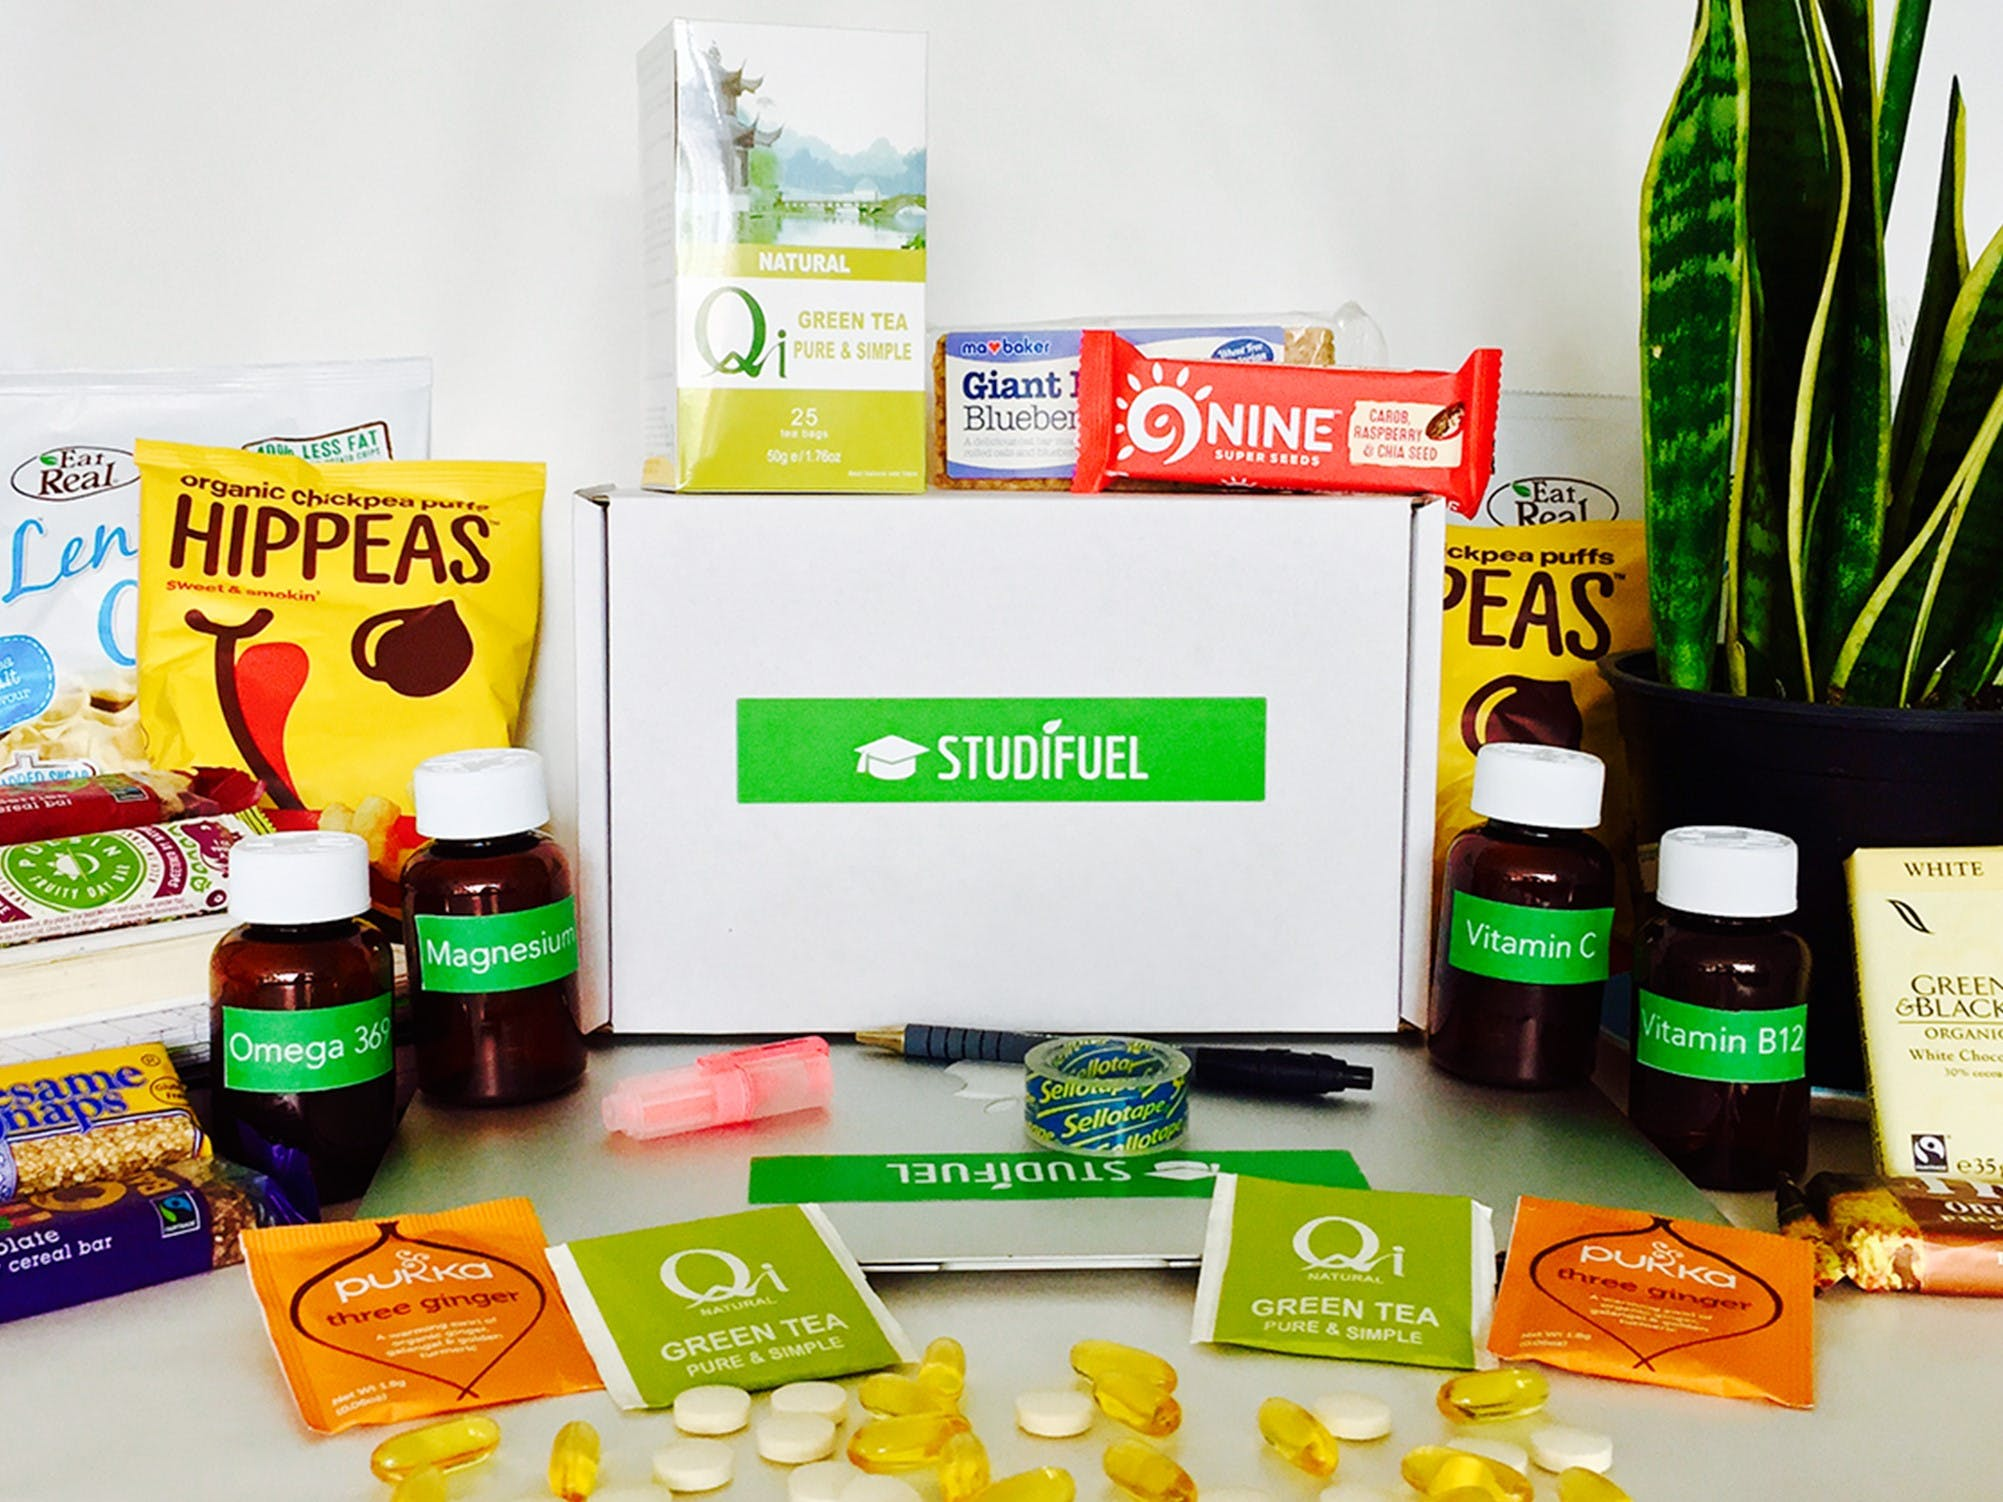 Studifuel - The Student Health Box